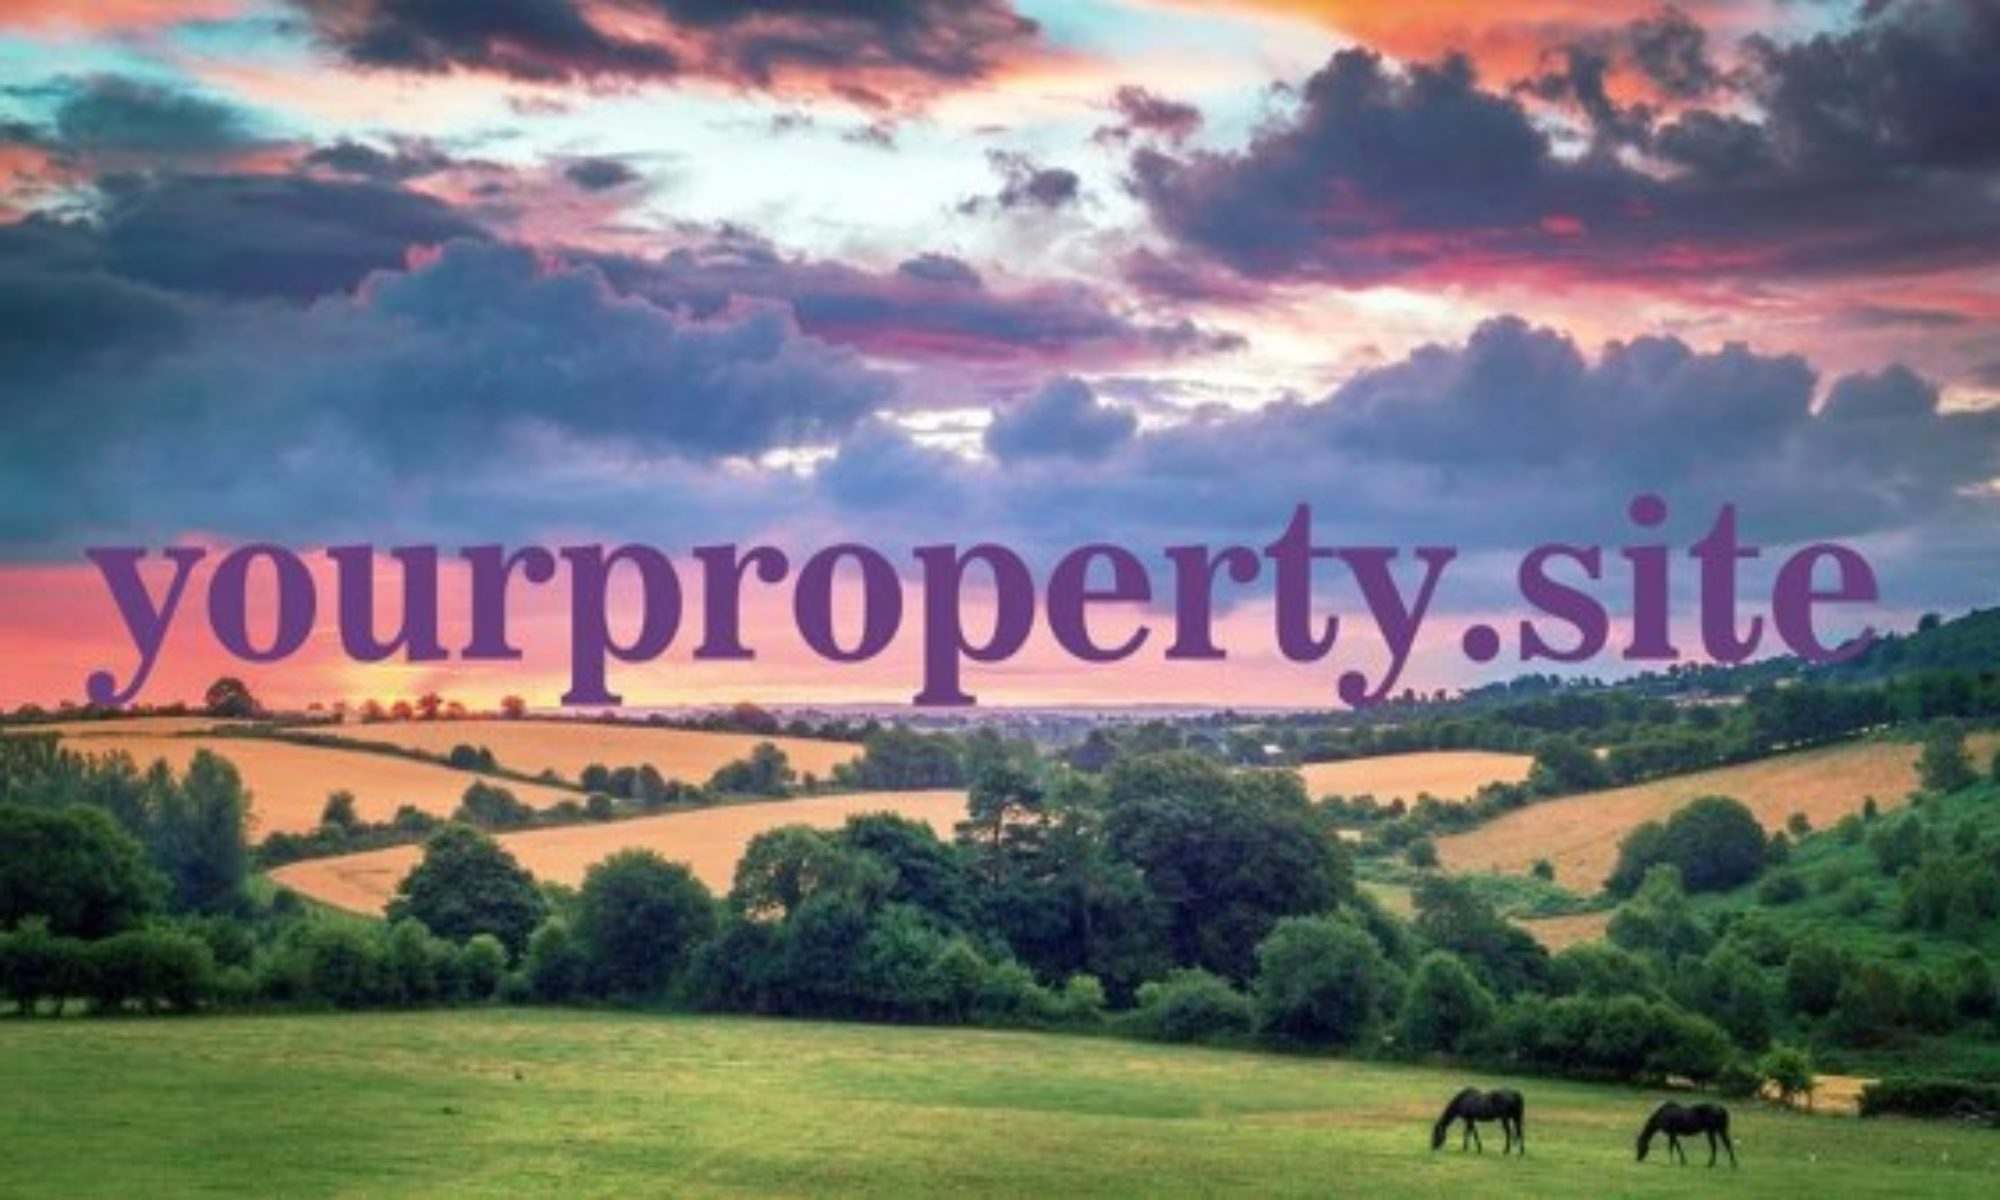 yourproperty.site